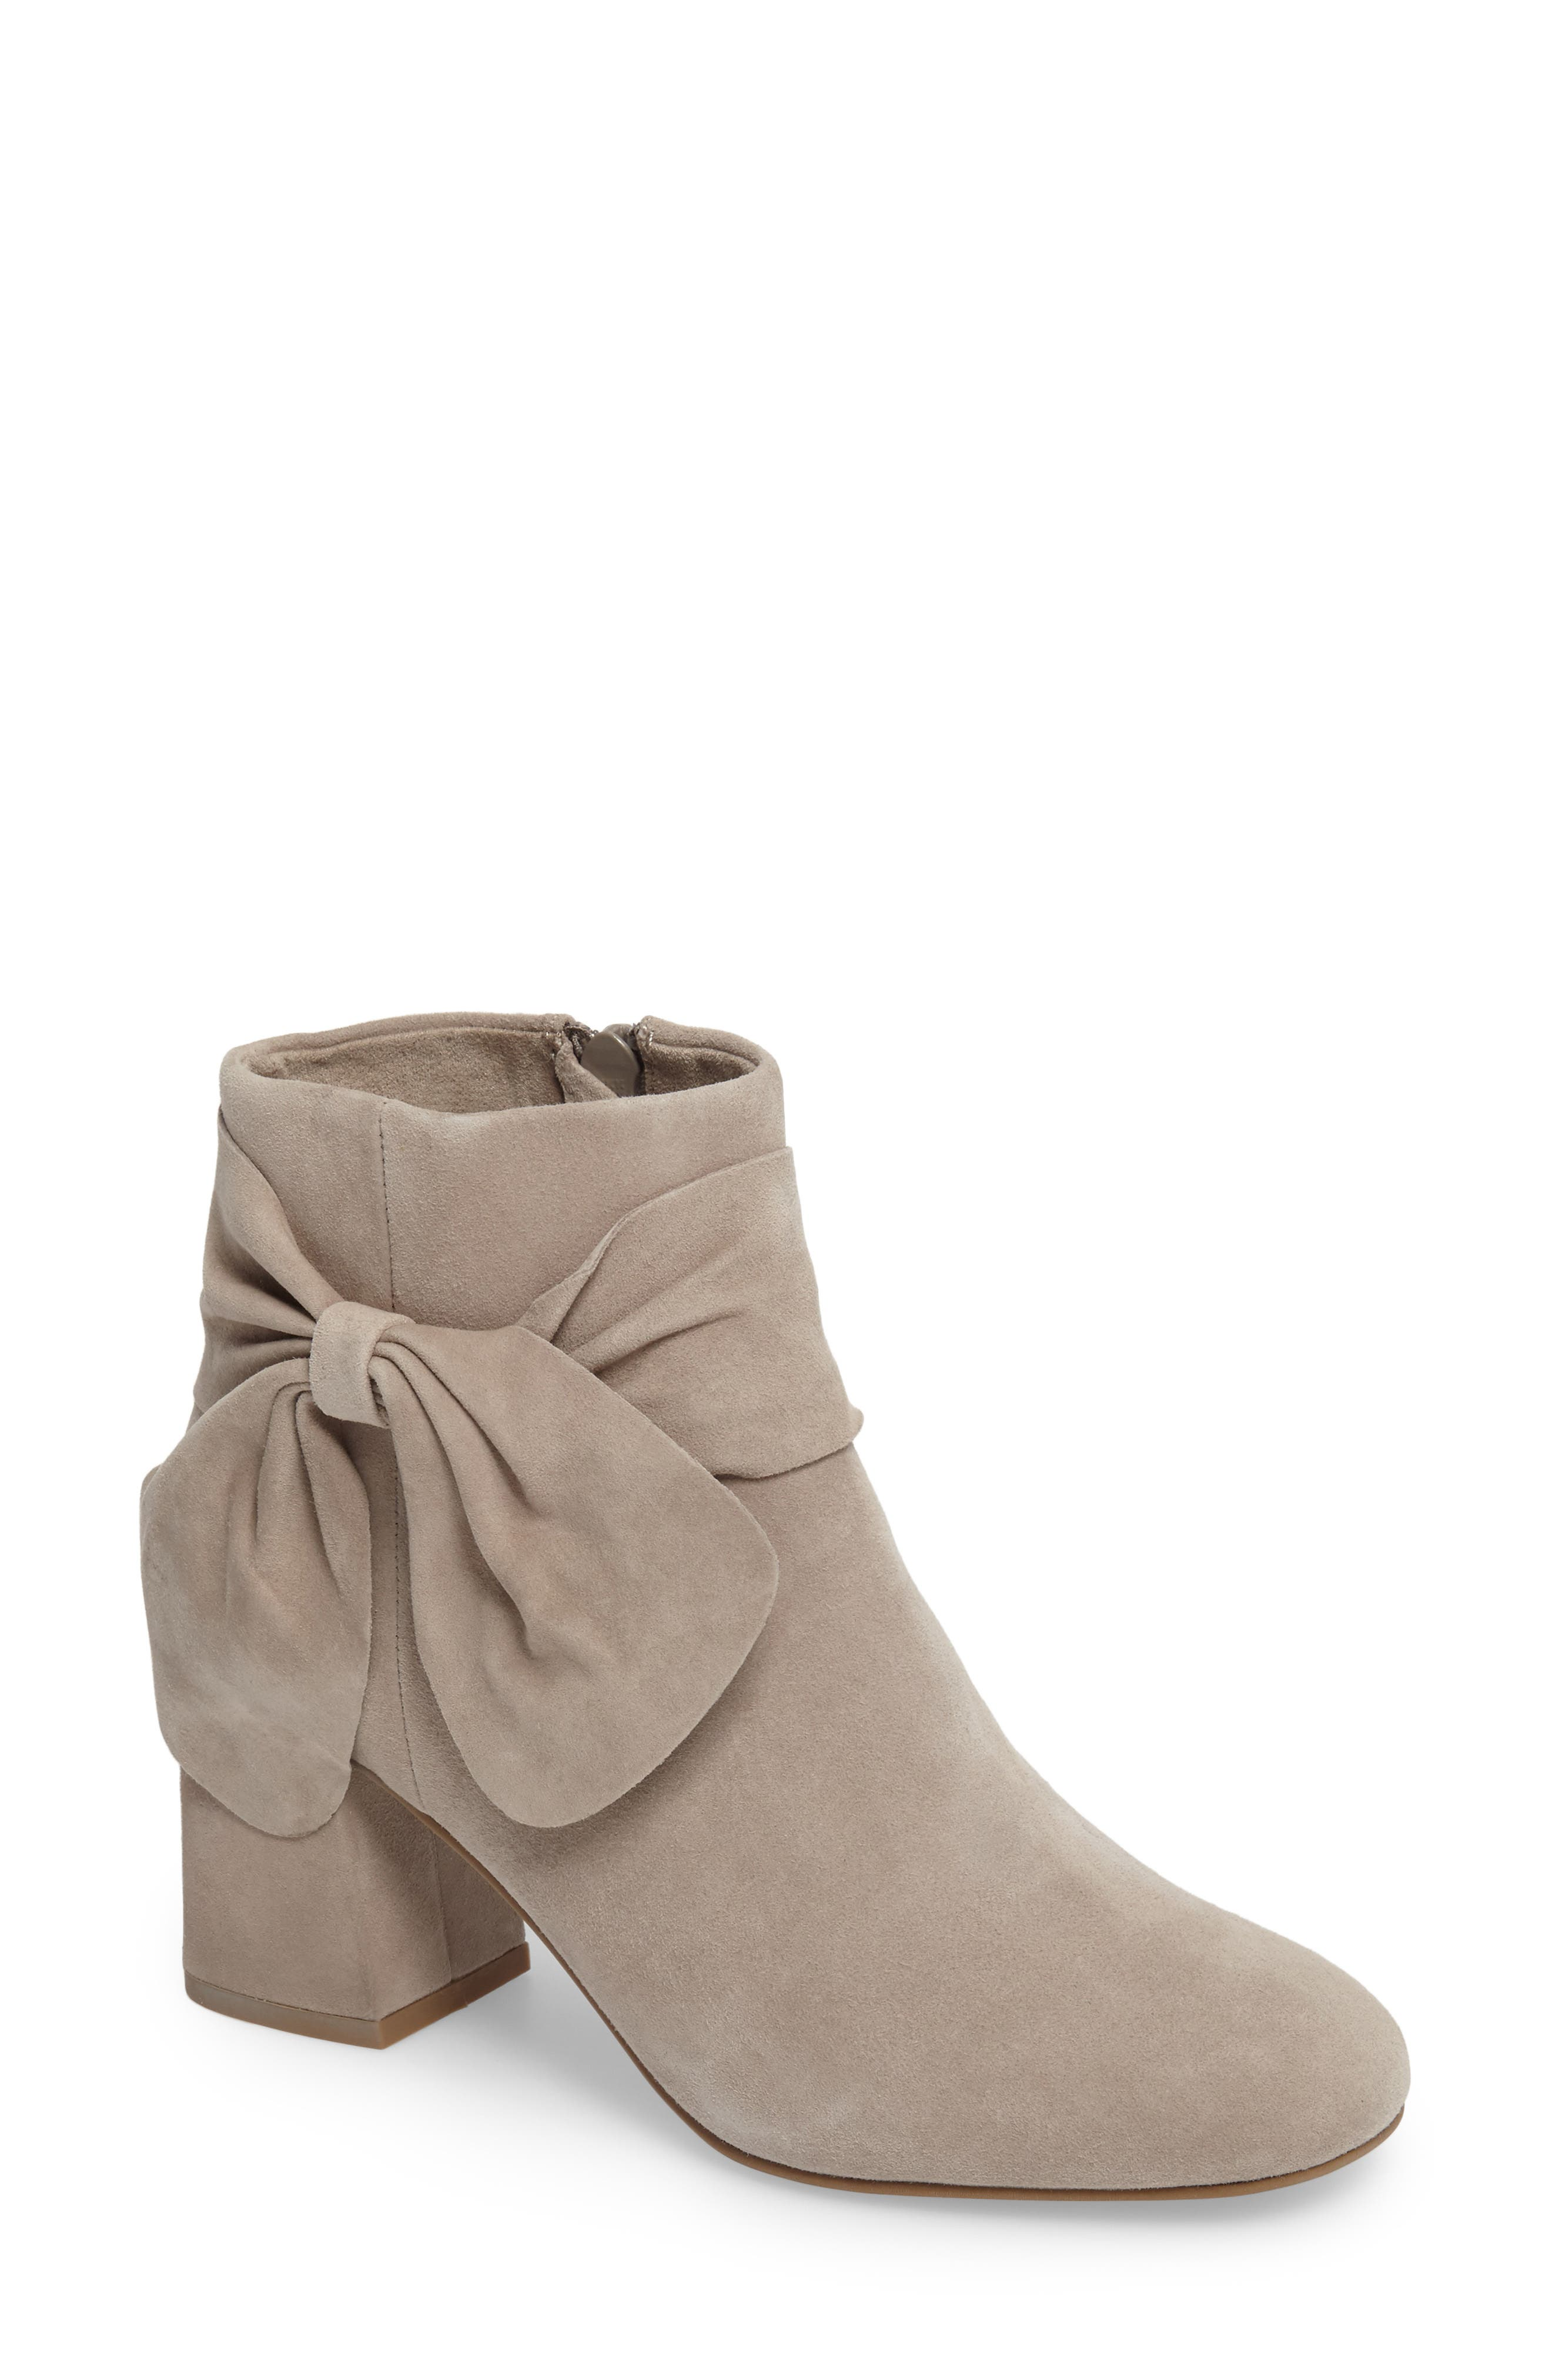 Catwalk Bootie,                         Main,                         color, Taupe Suede